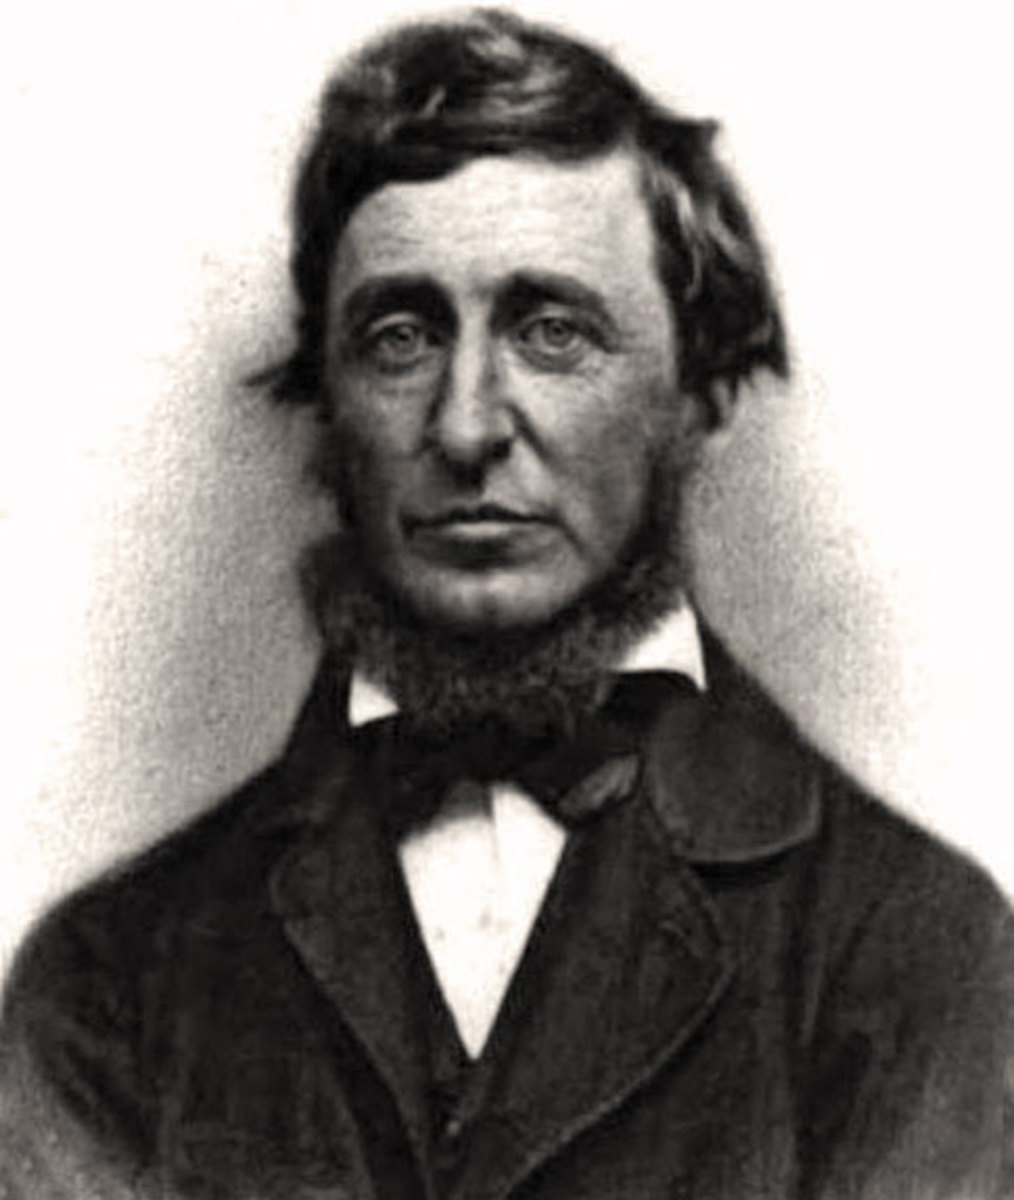 the literary achievements of henry david thoreau View essay - literary biography of henry david thoreau from english 2333 at tarrant county literary biography of henry david thoreau (1817 1862) in some of the obituaries written at the.